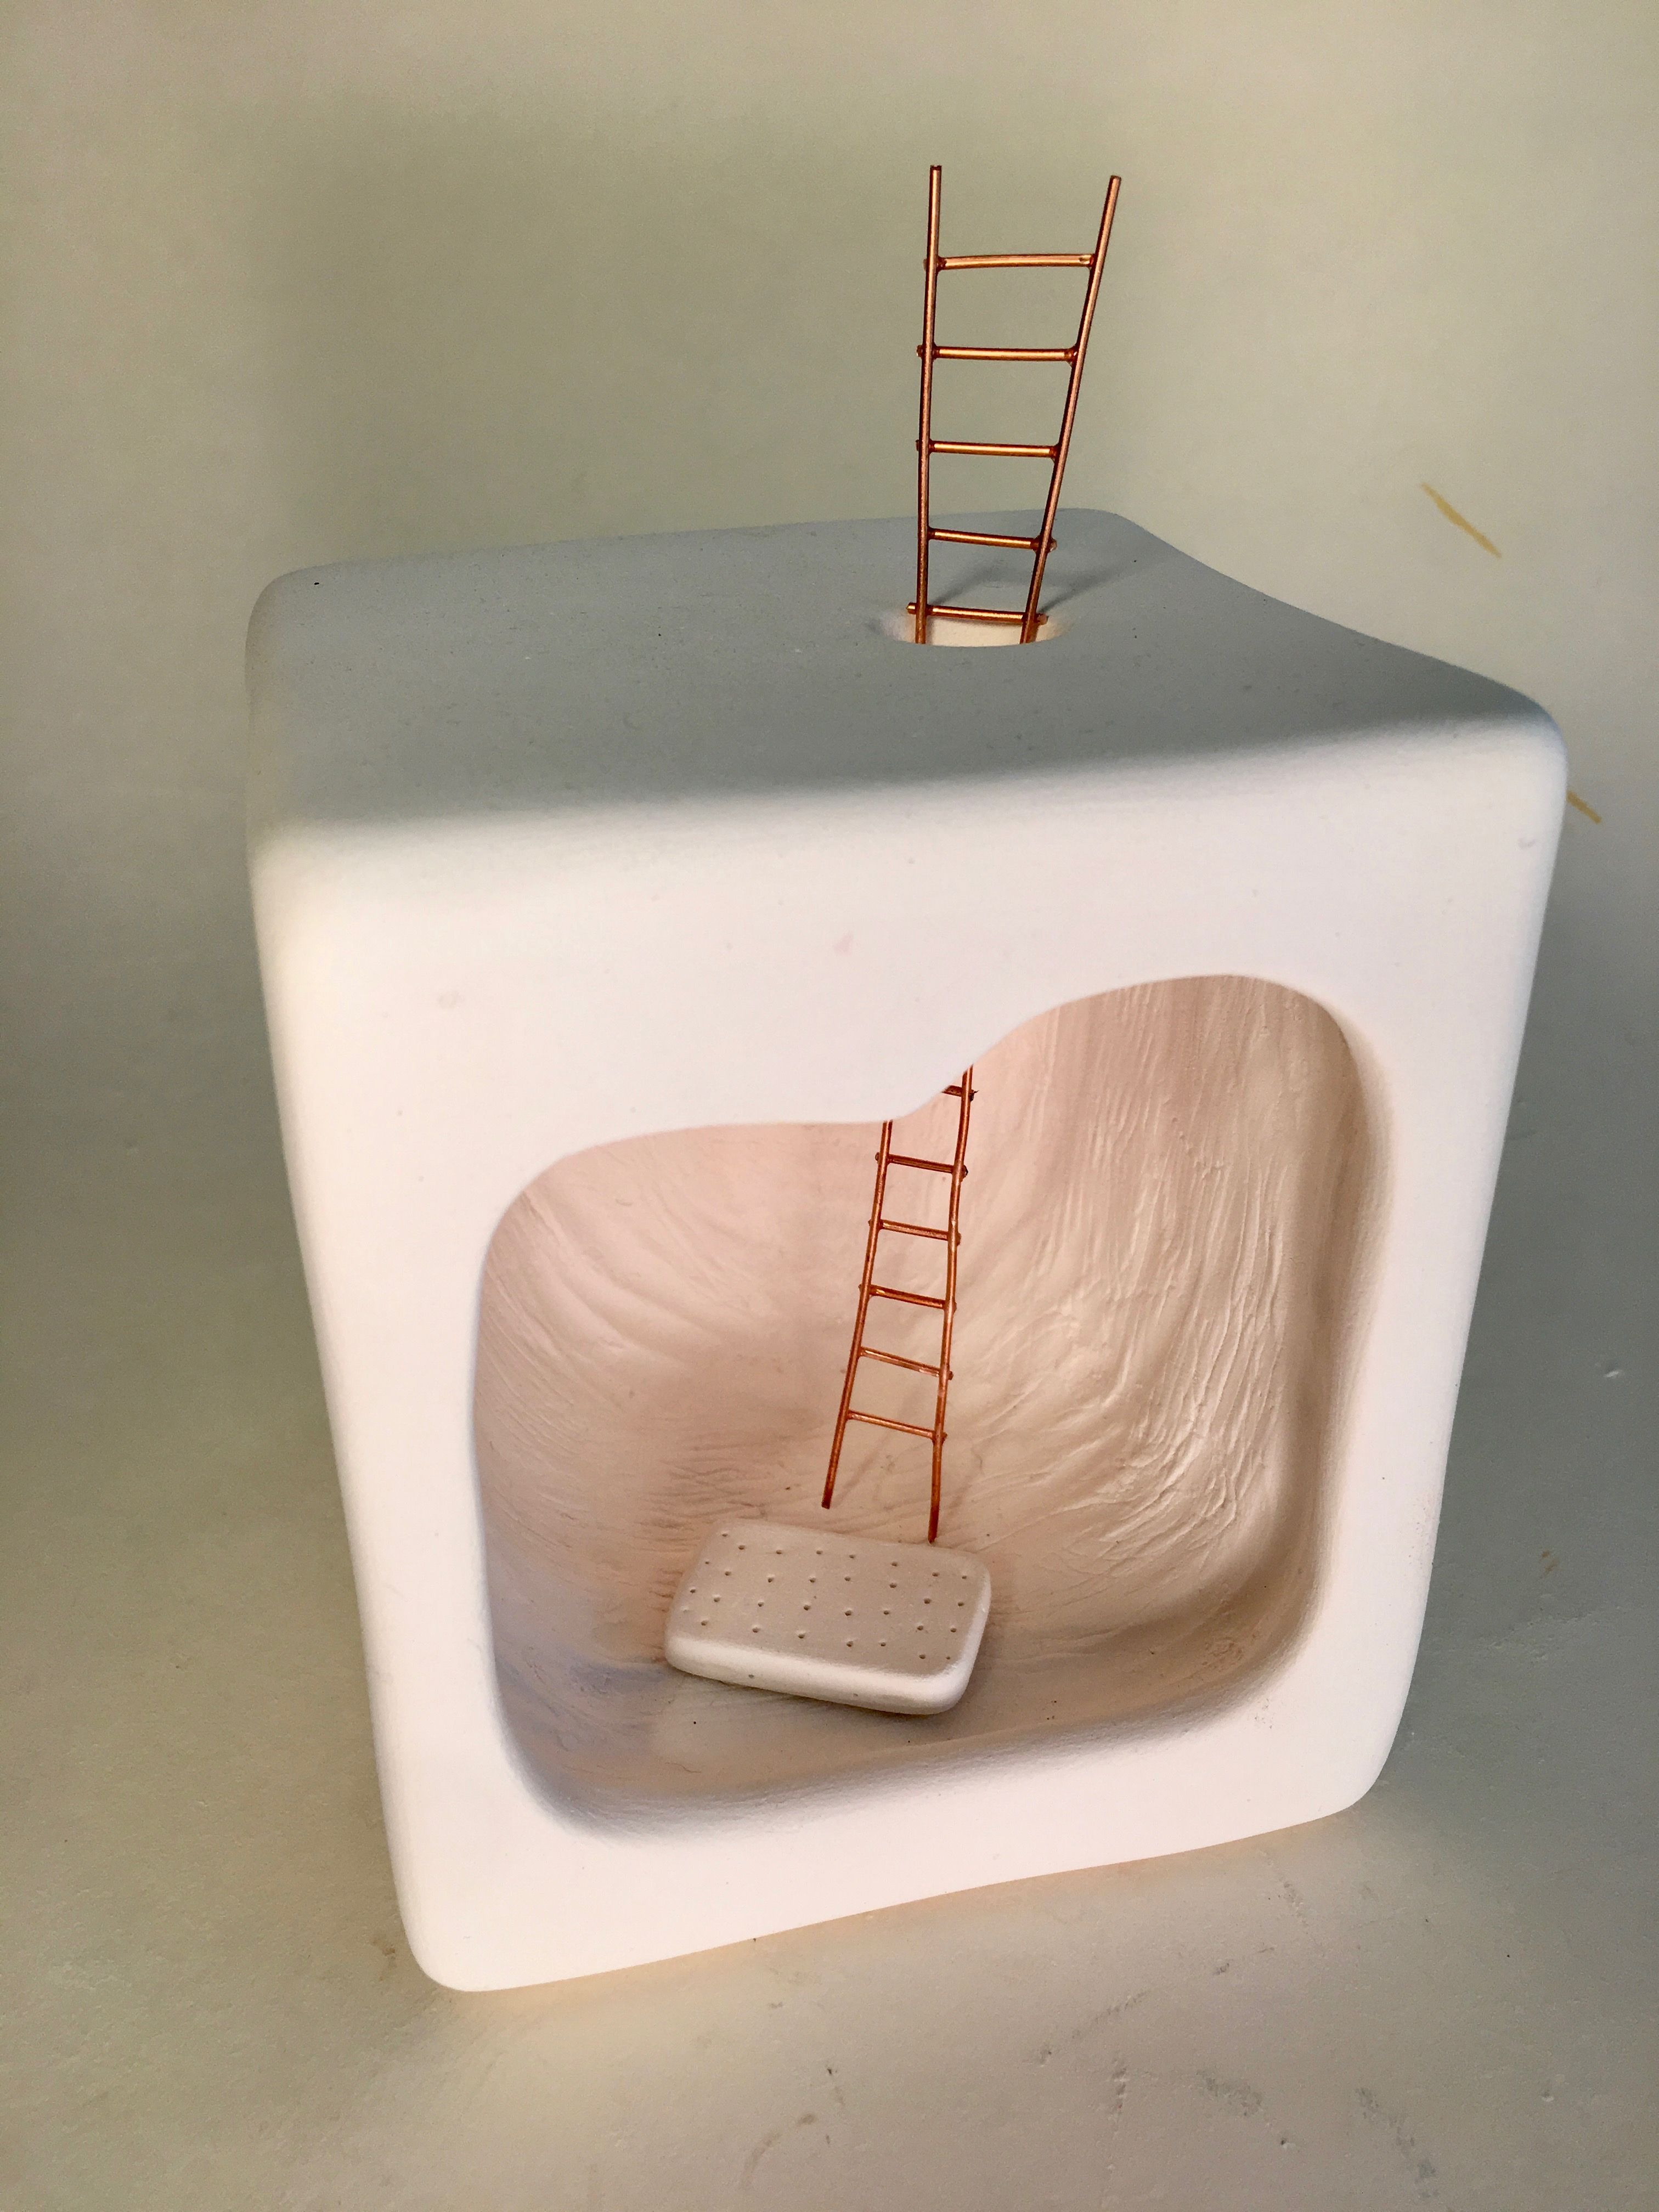 Alone But Not Lonely 2018 Unglazed Porcelain With Led Light